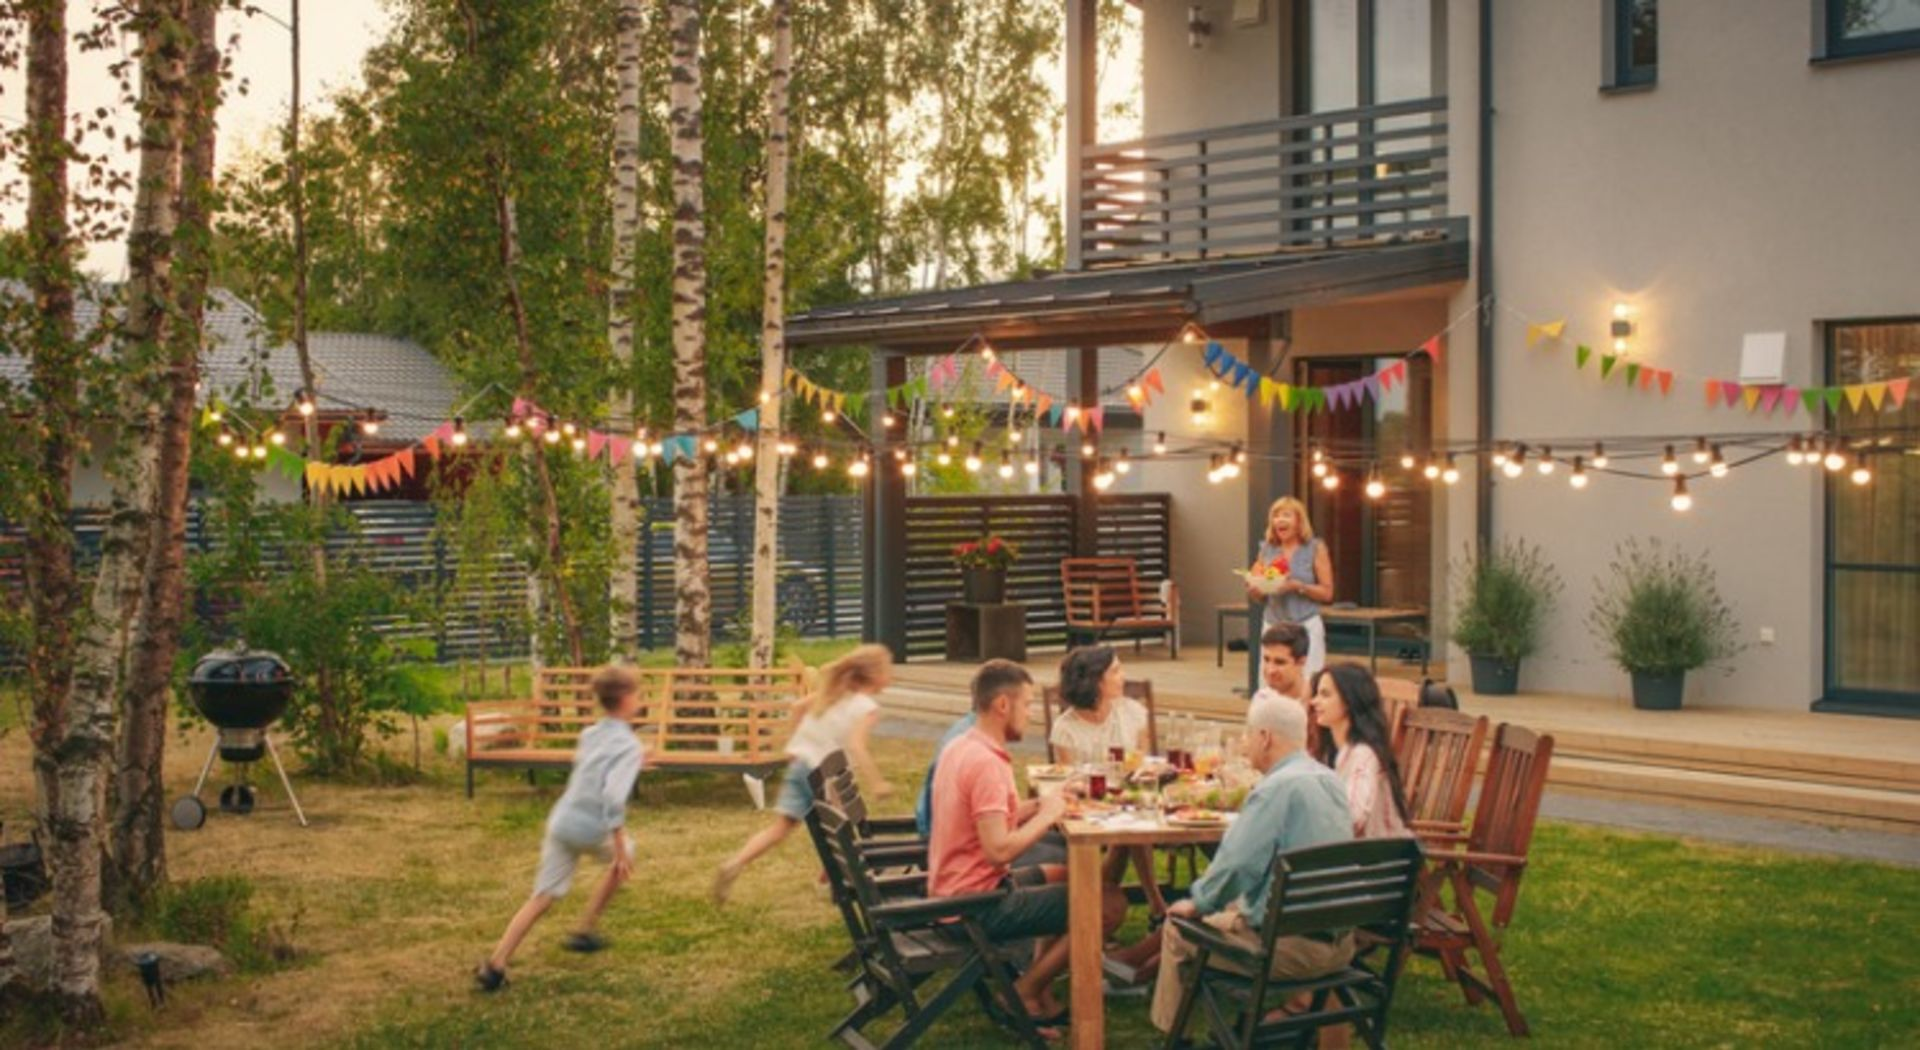 8 Easy Design Tips to Maximize Your Outdoor Space this Summer